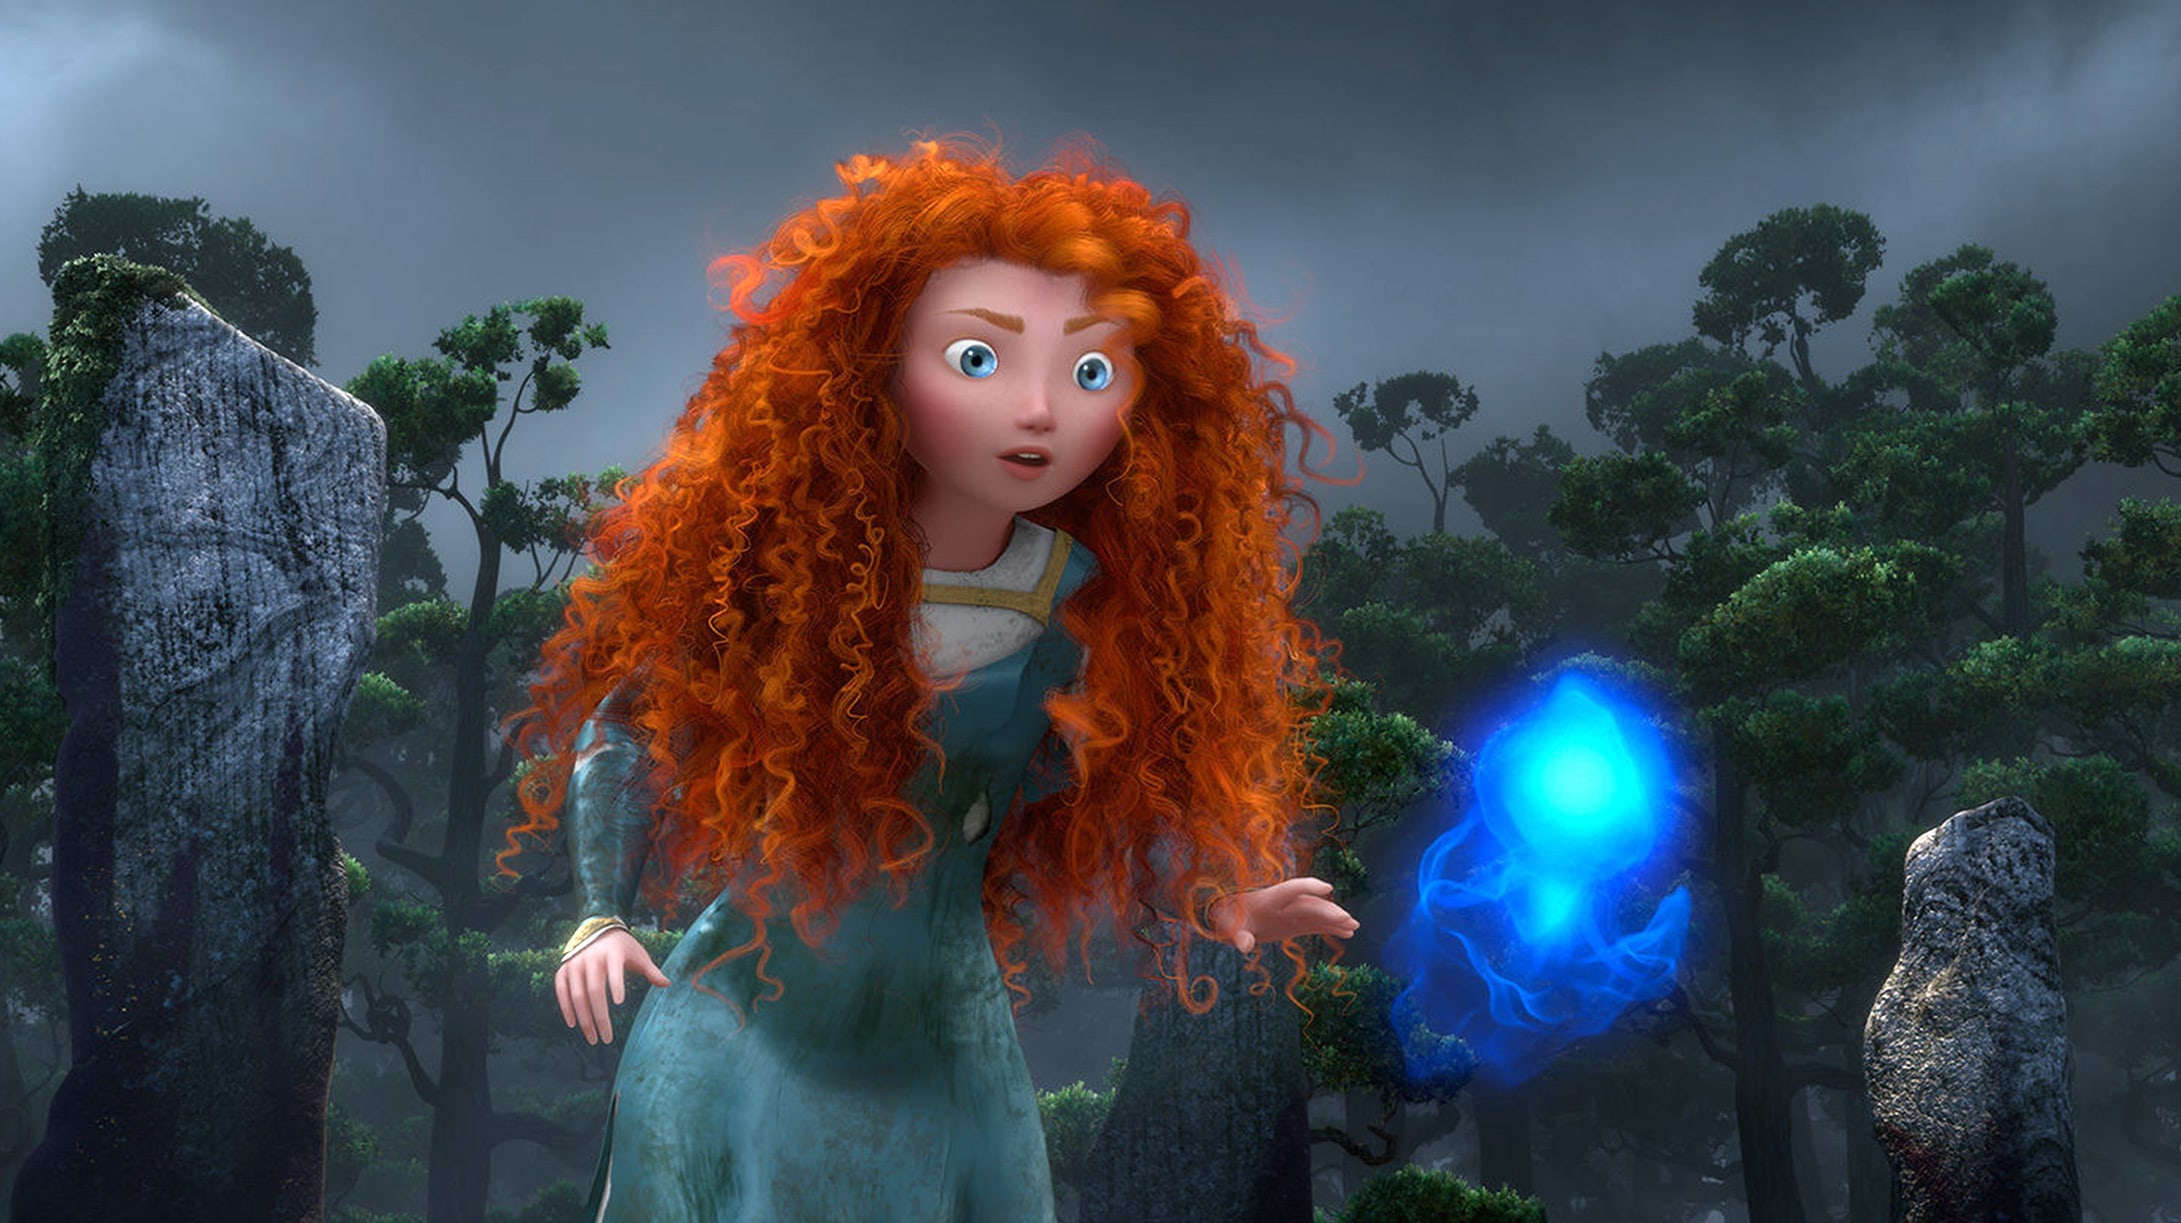 Merida spotting a wisp in the forest.